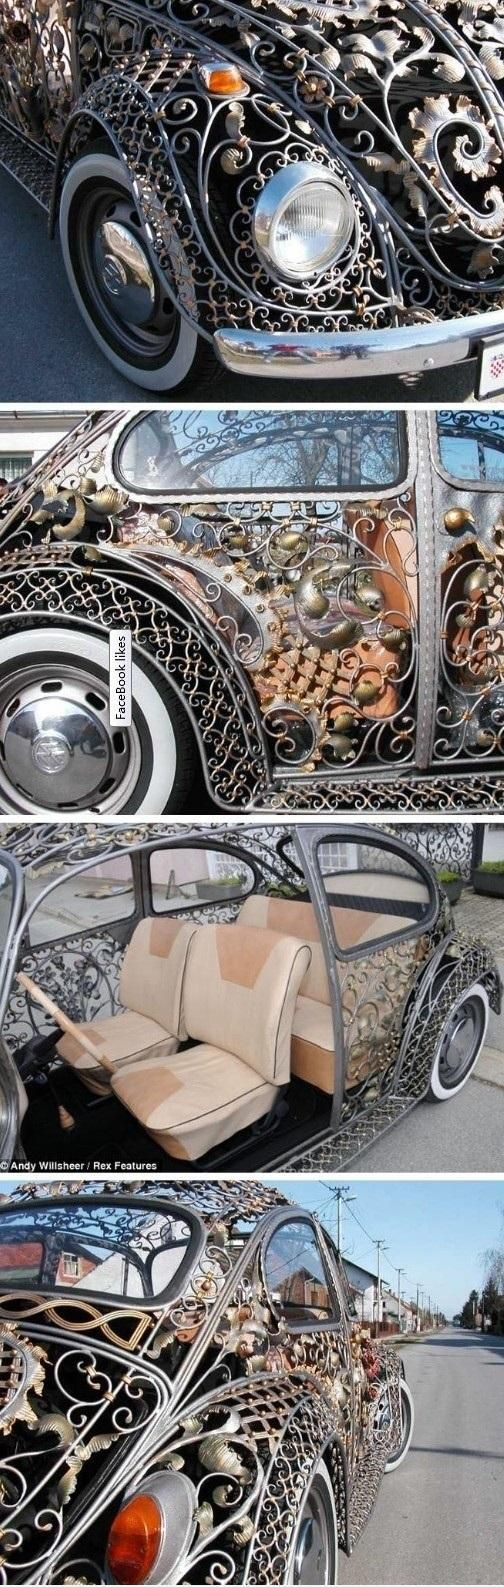 Wrought-iron Bug Carriage! That's what name comes to mind. Lol